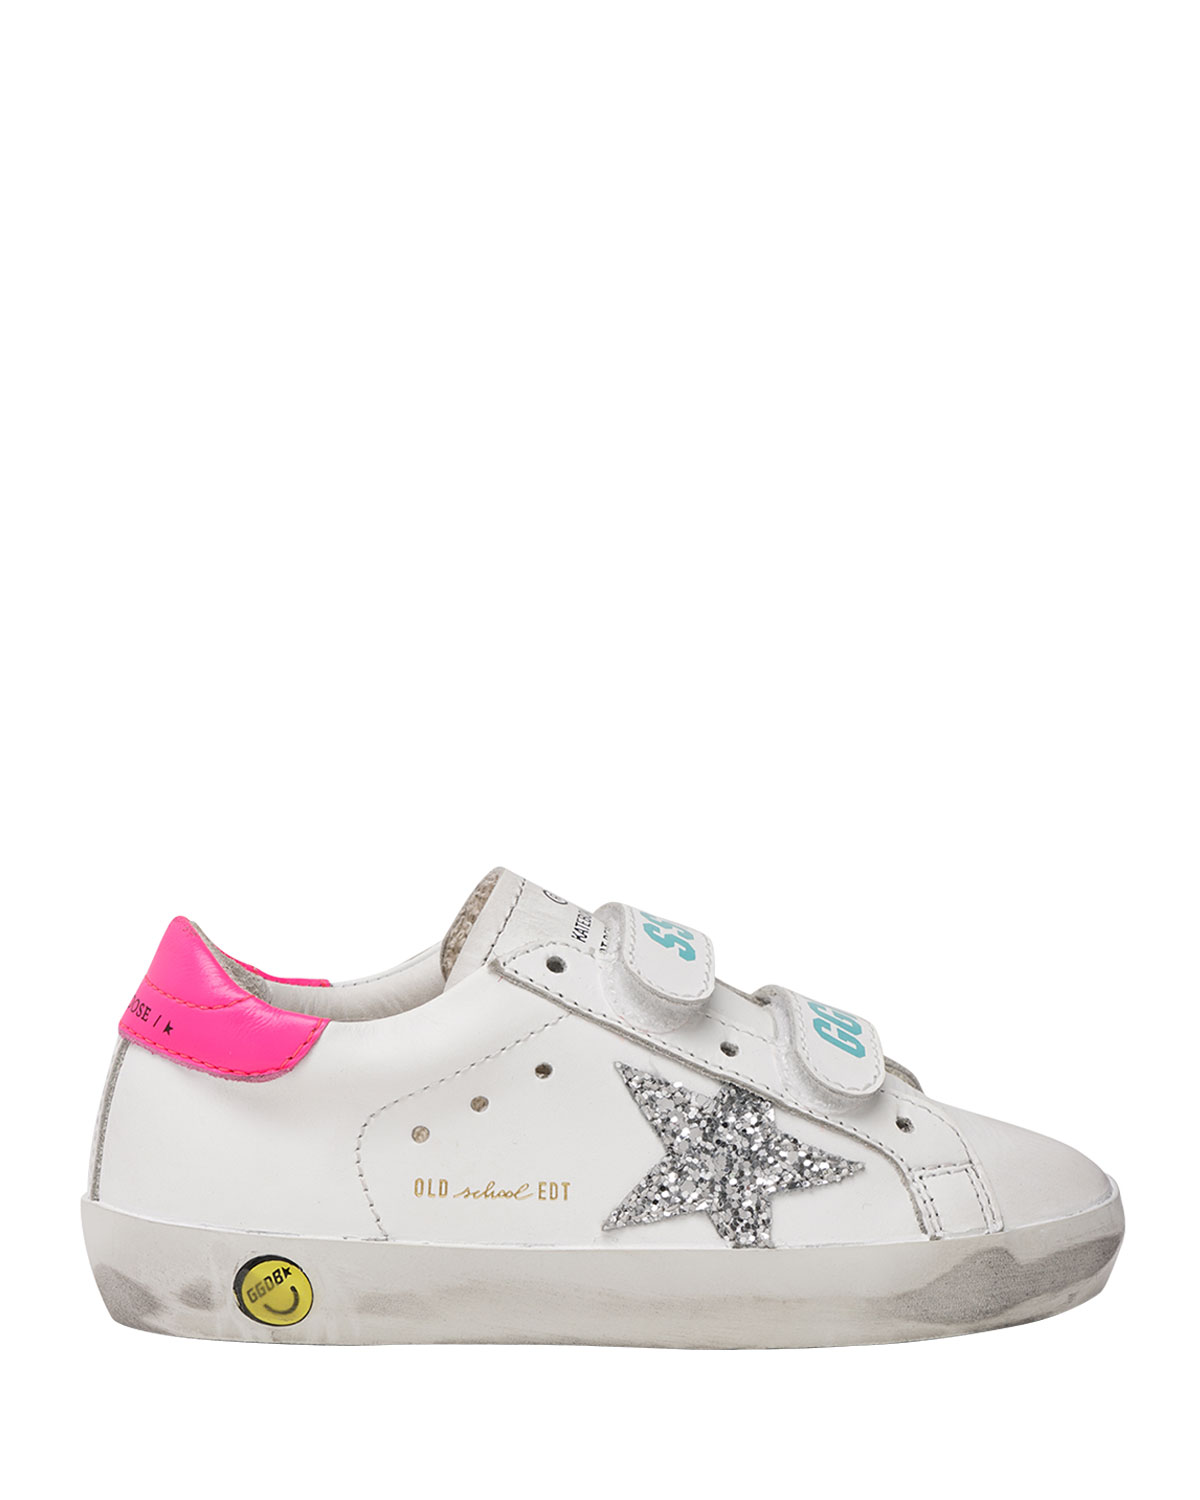 Golden Goose Girl's Old School Leather Logo Grip-Strap Sneakers, Toddlers/Kids